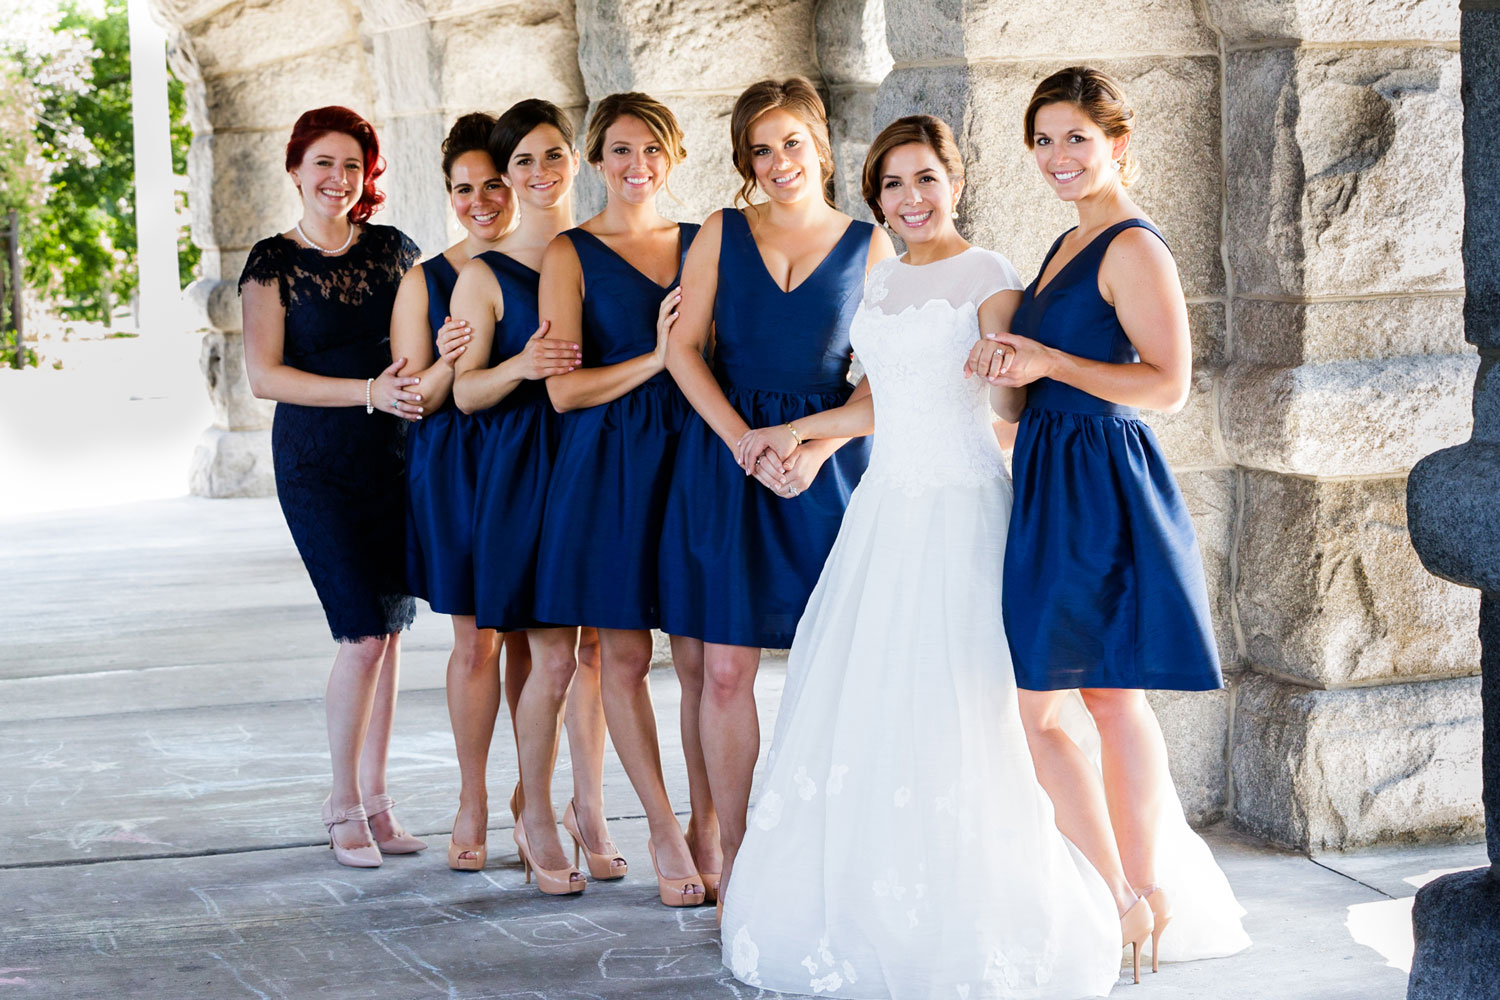 pantone color of the year 2020 classic blue wedding ideas blue bridesmaid dresses